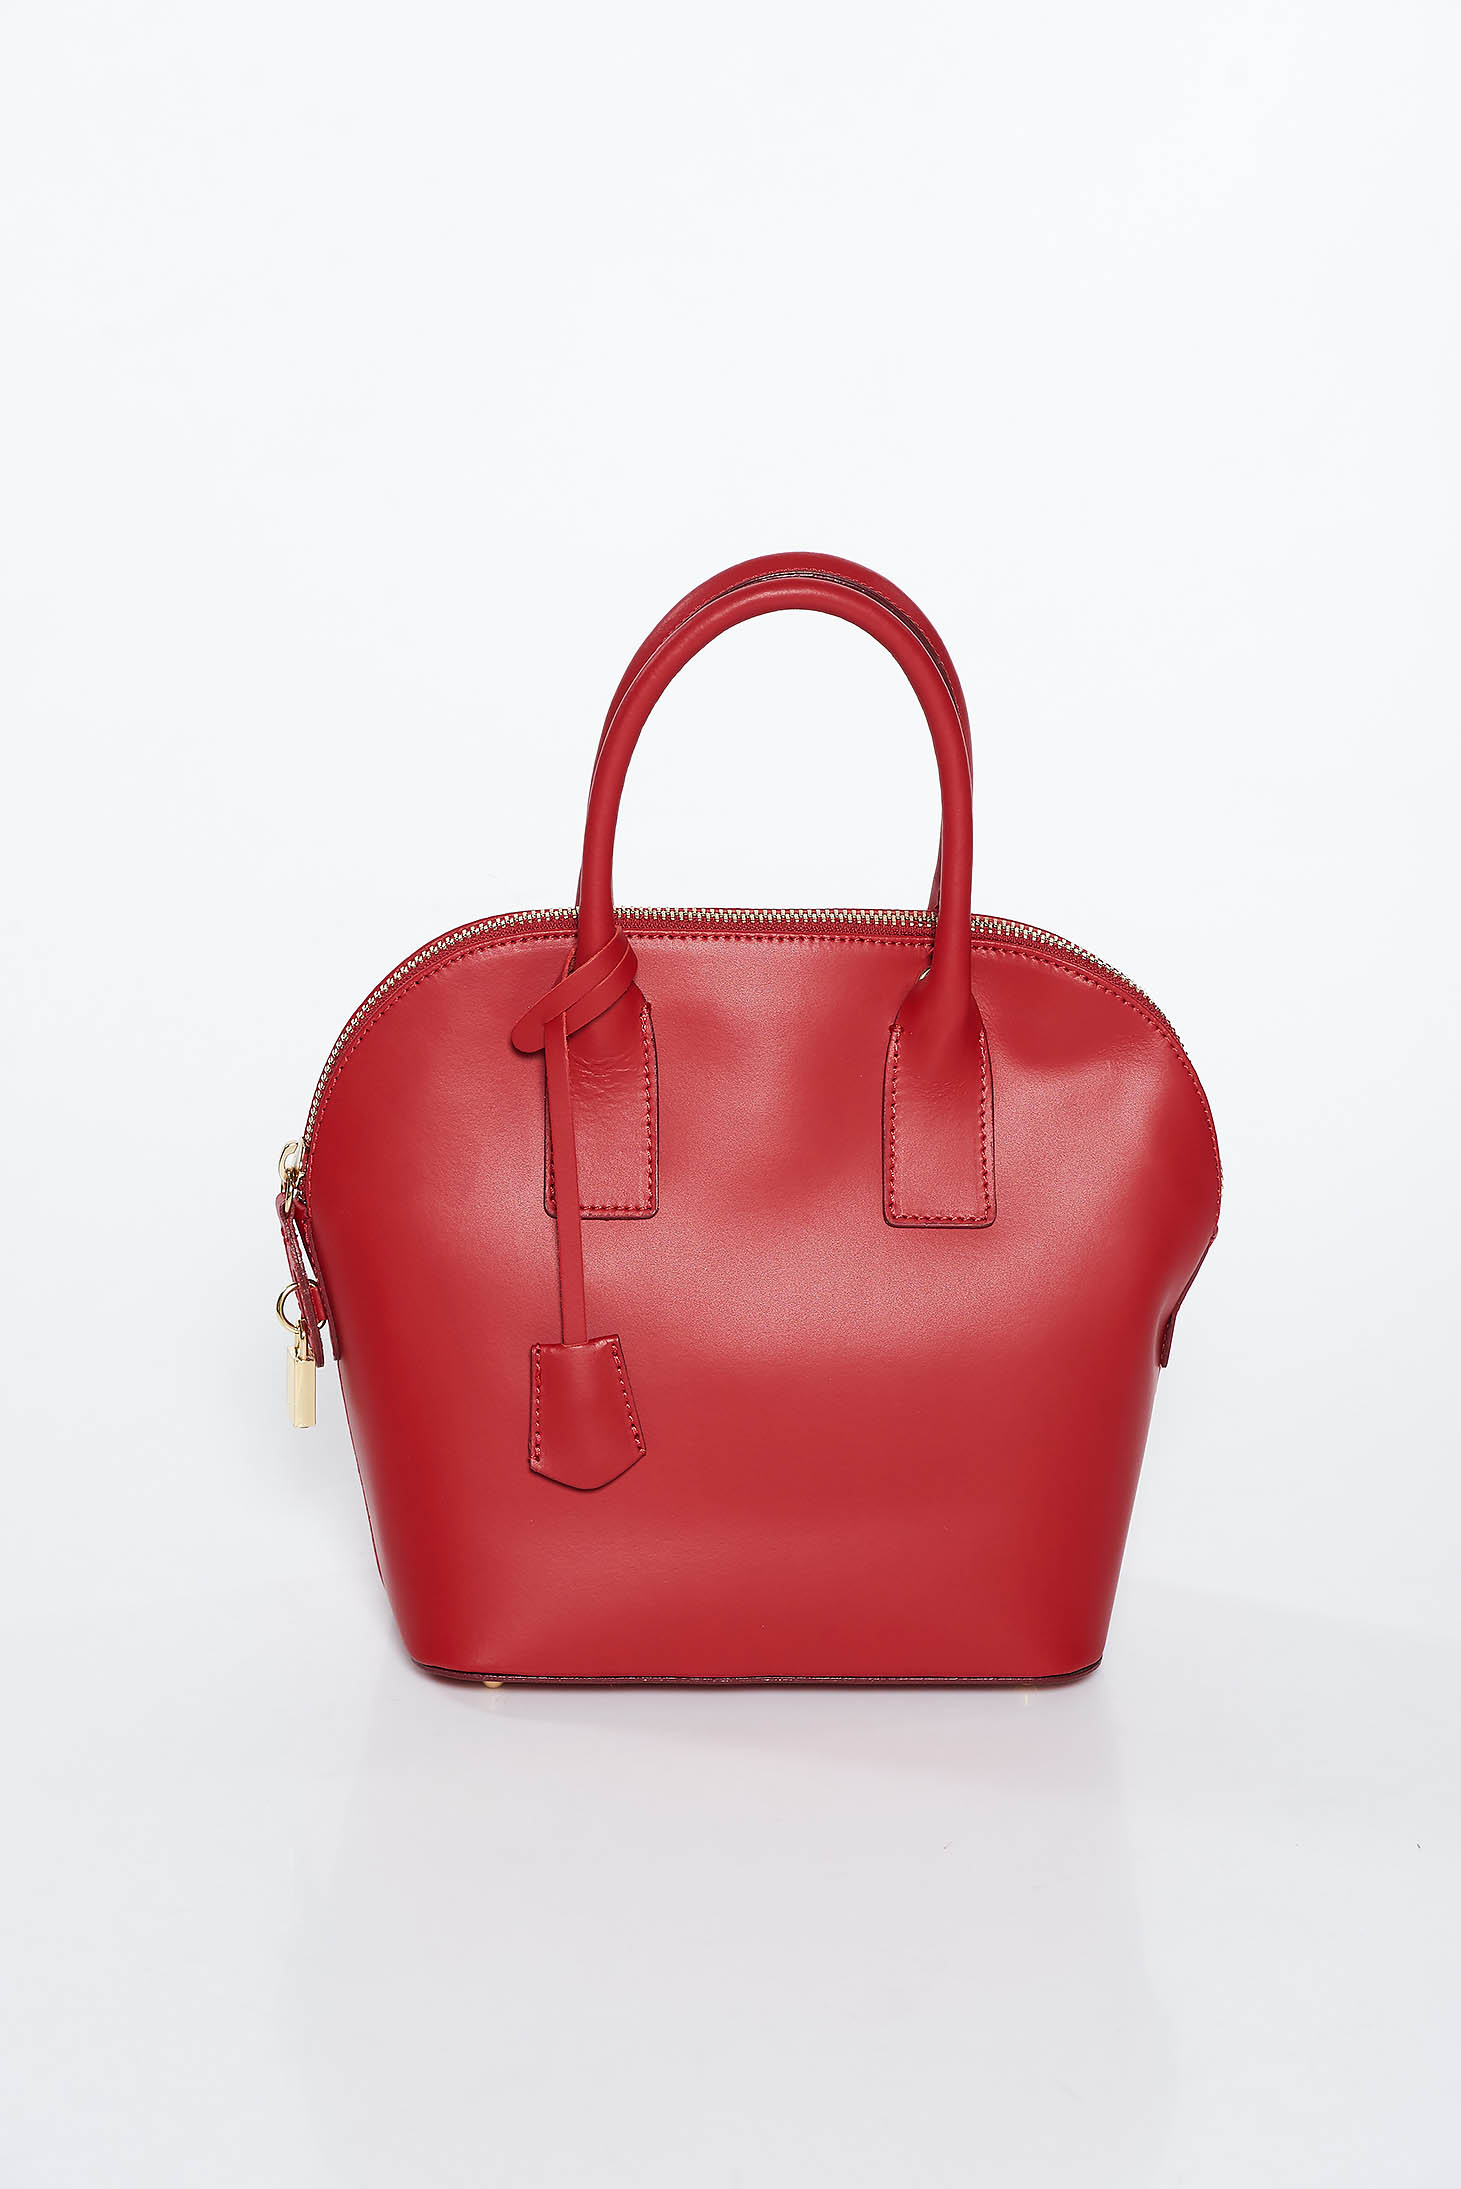 Burgundy office bag natural leather with a compartment with internal pockets